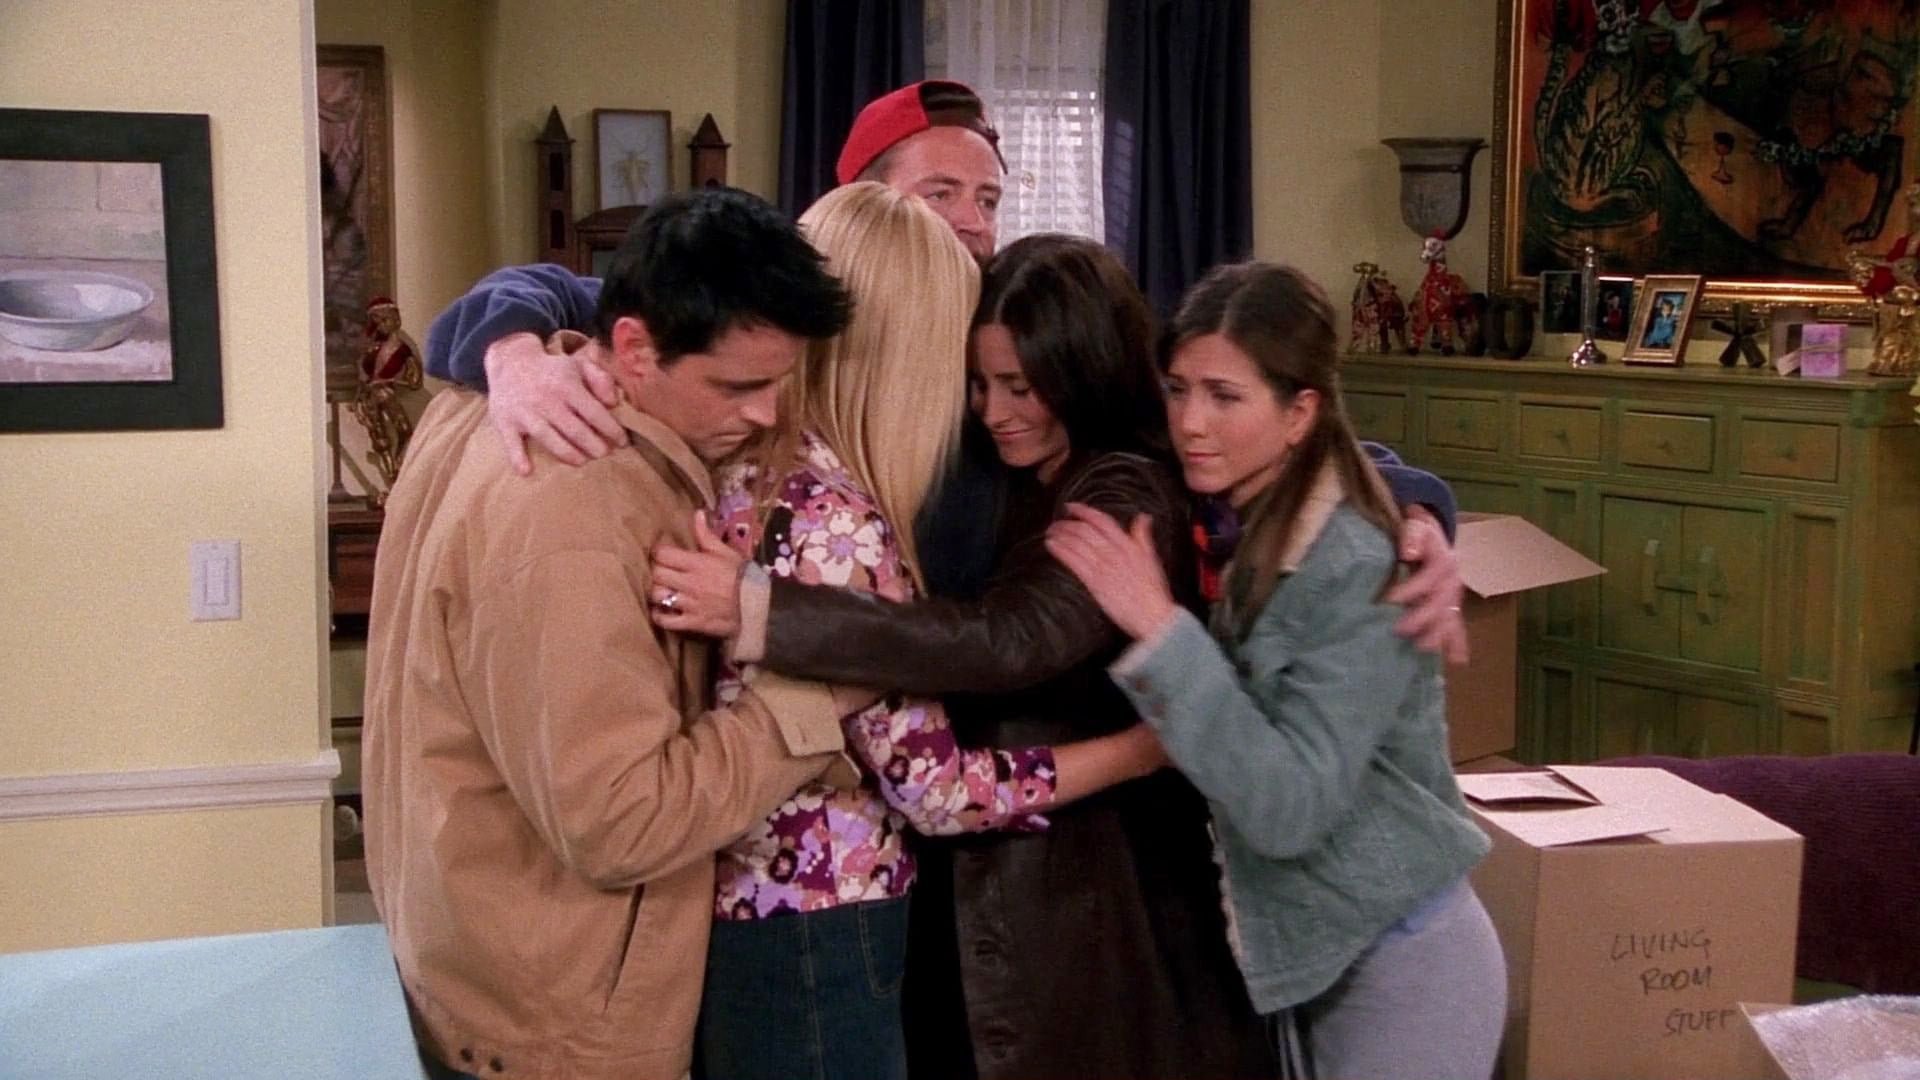 Friends - Season 9 Episode 16 : The One with the Boob Job